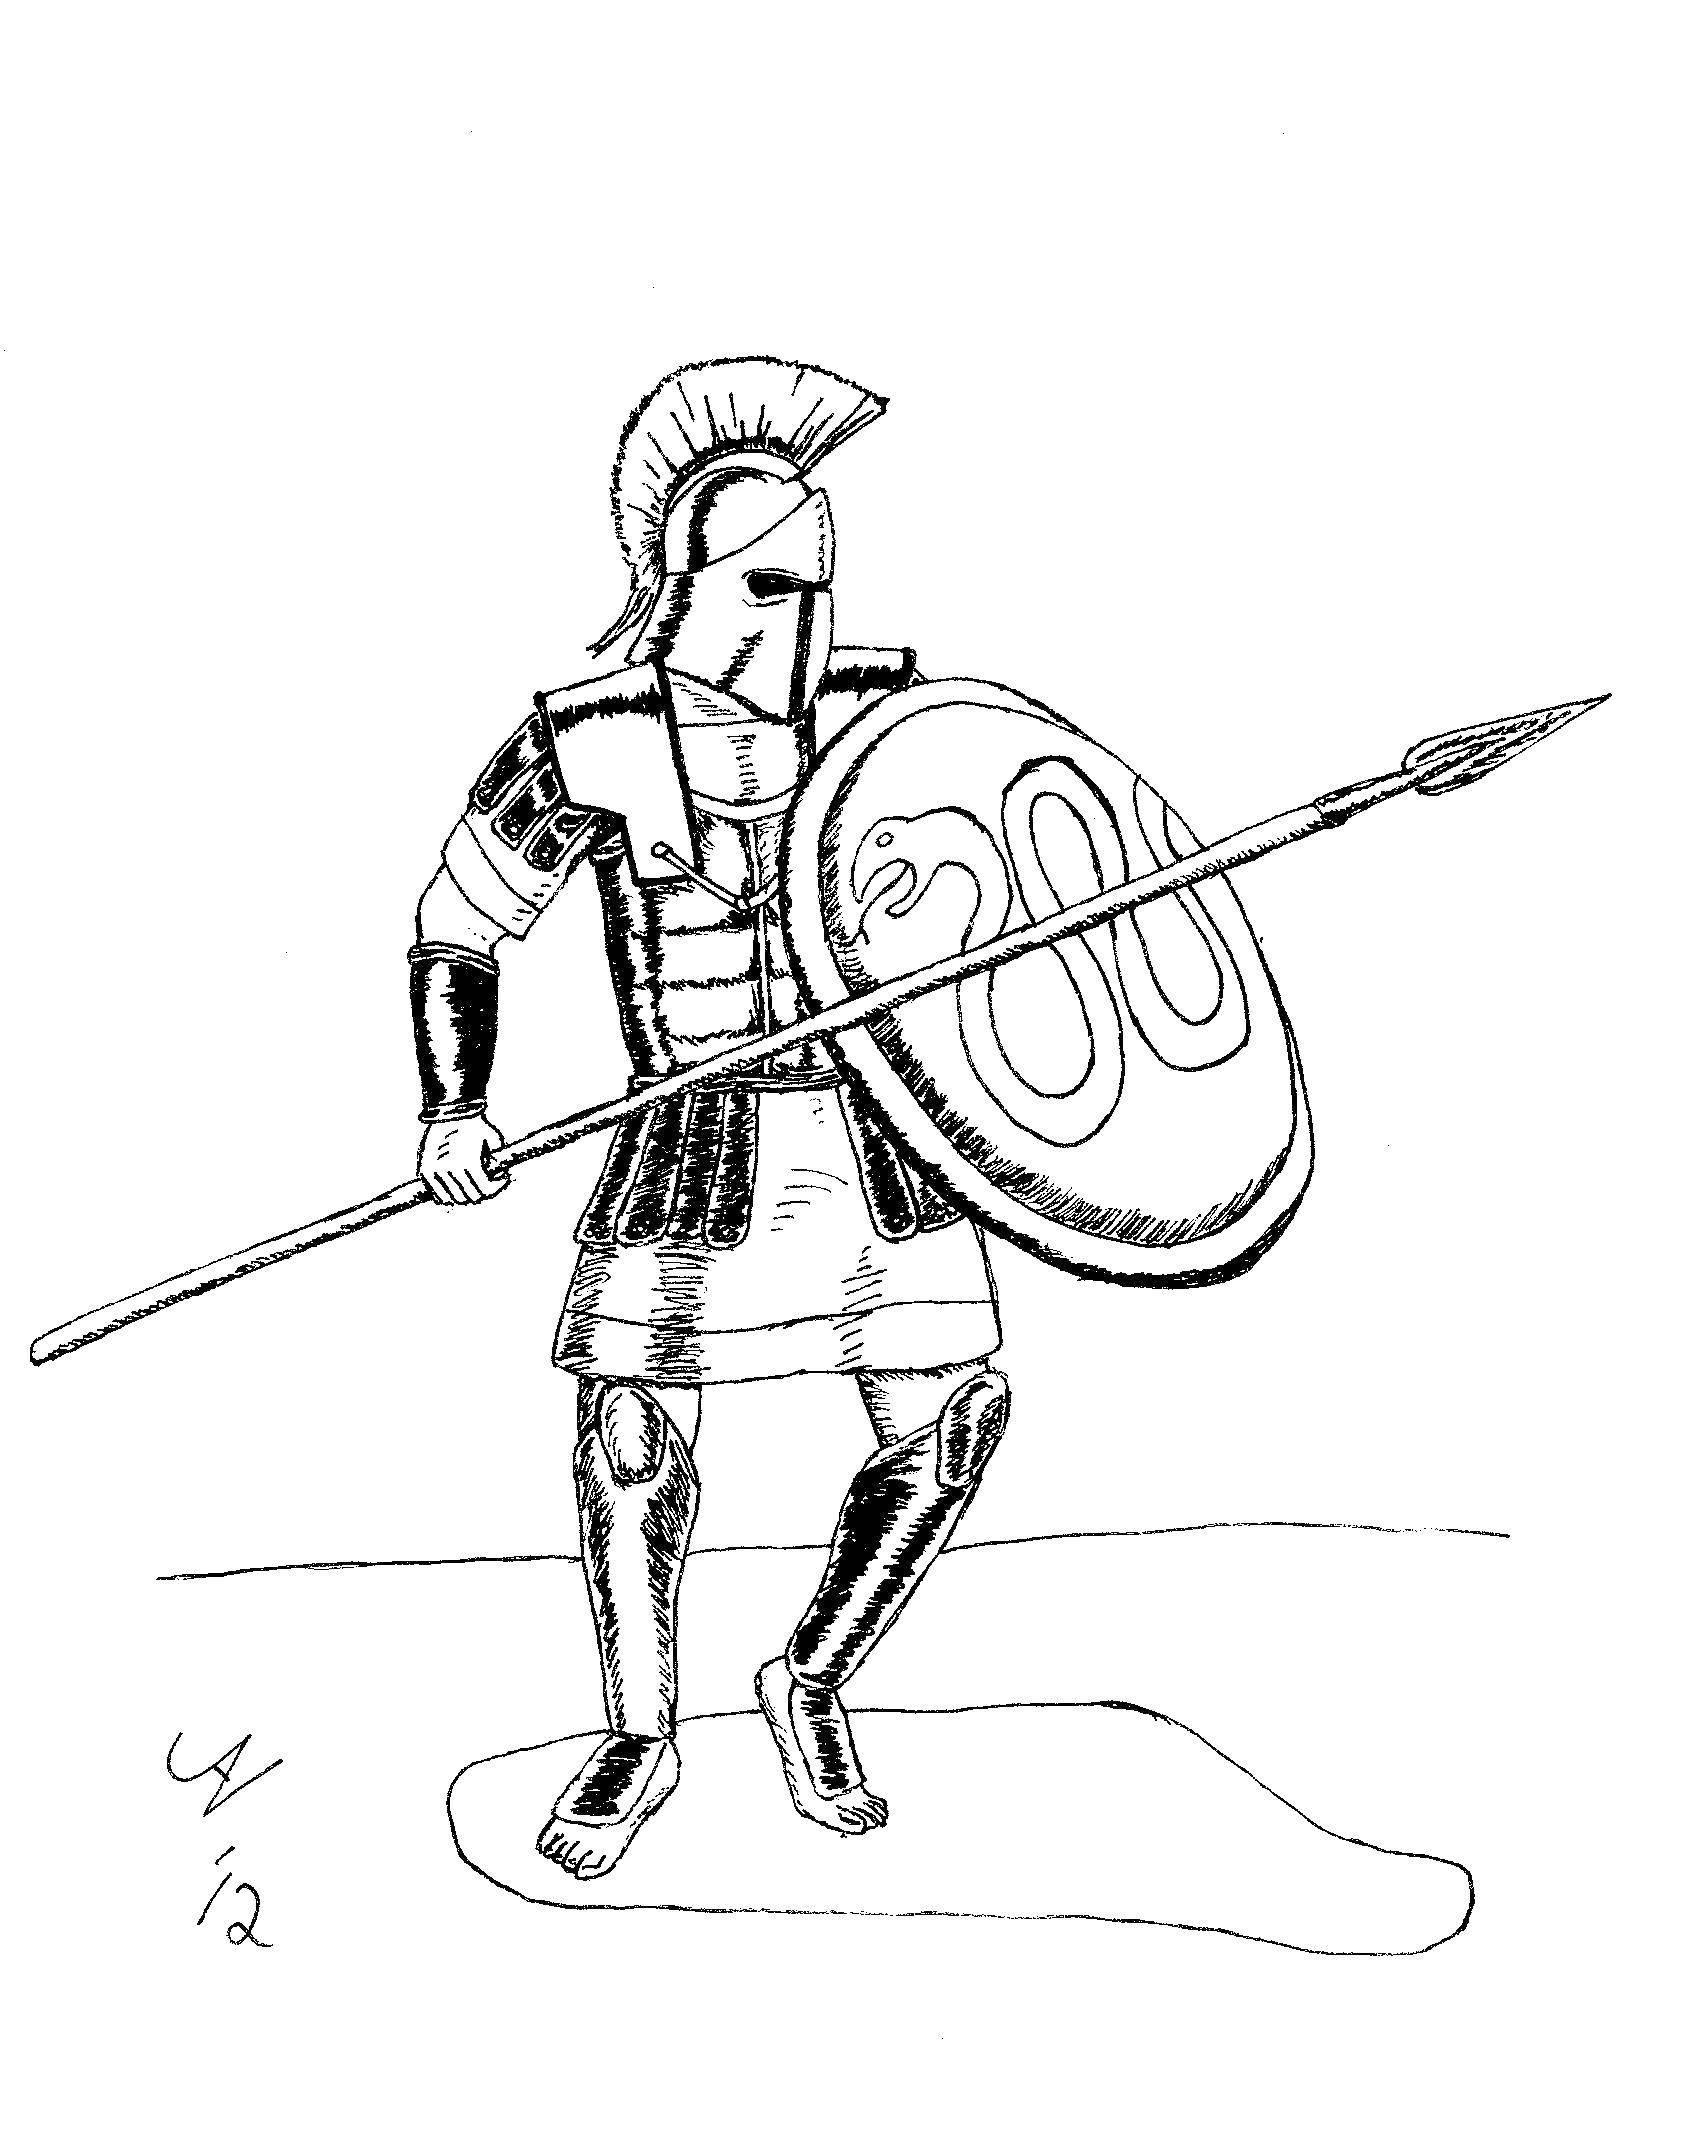 gladiator pictures to colour in gladiator coloring download gladiator coloring for free 2019 gladiator pictures to colour in